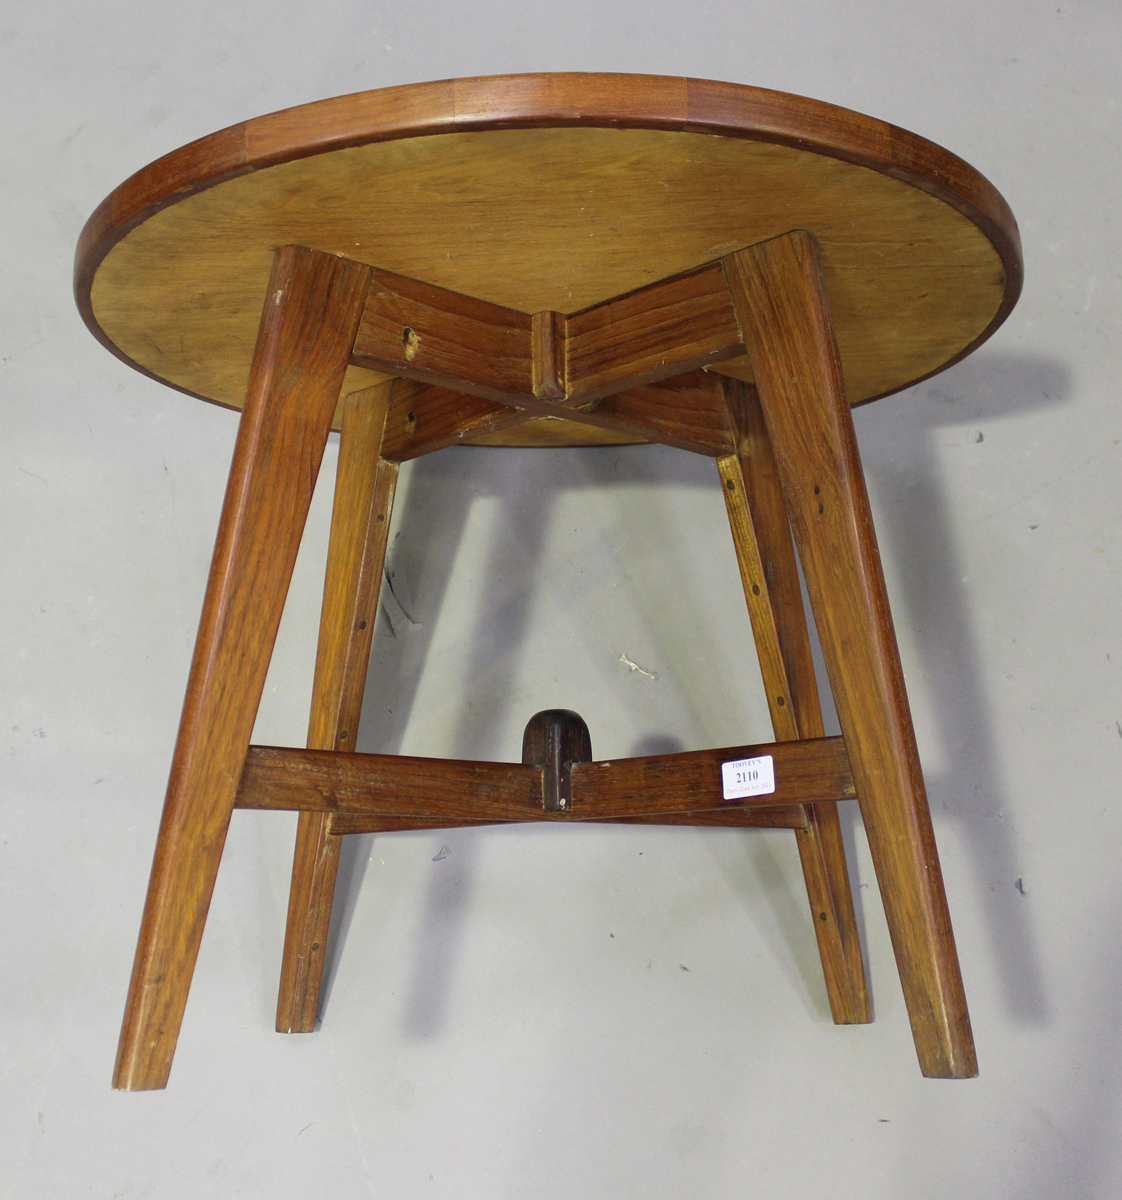 A mid-20th century teak circular occasional table of retro design, the planked top with raised edge, - Image 2 of 4